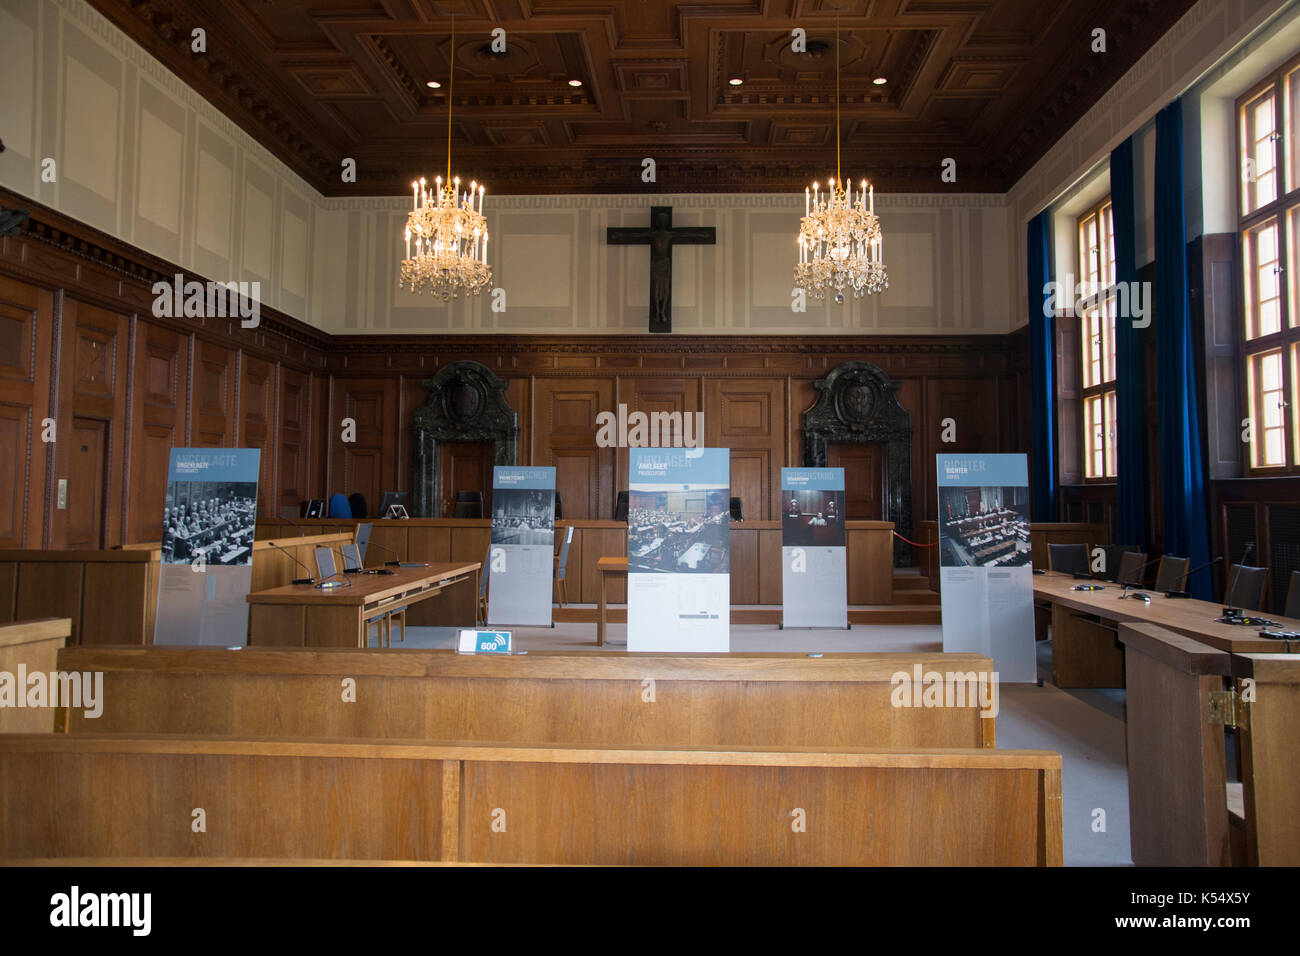 Nuremberg Palace of Justice, the venue for the post-War criminal trials of Nazi leaders - Stock Image